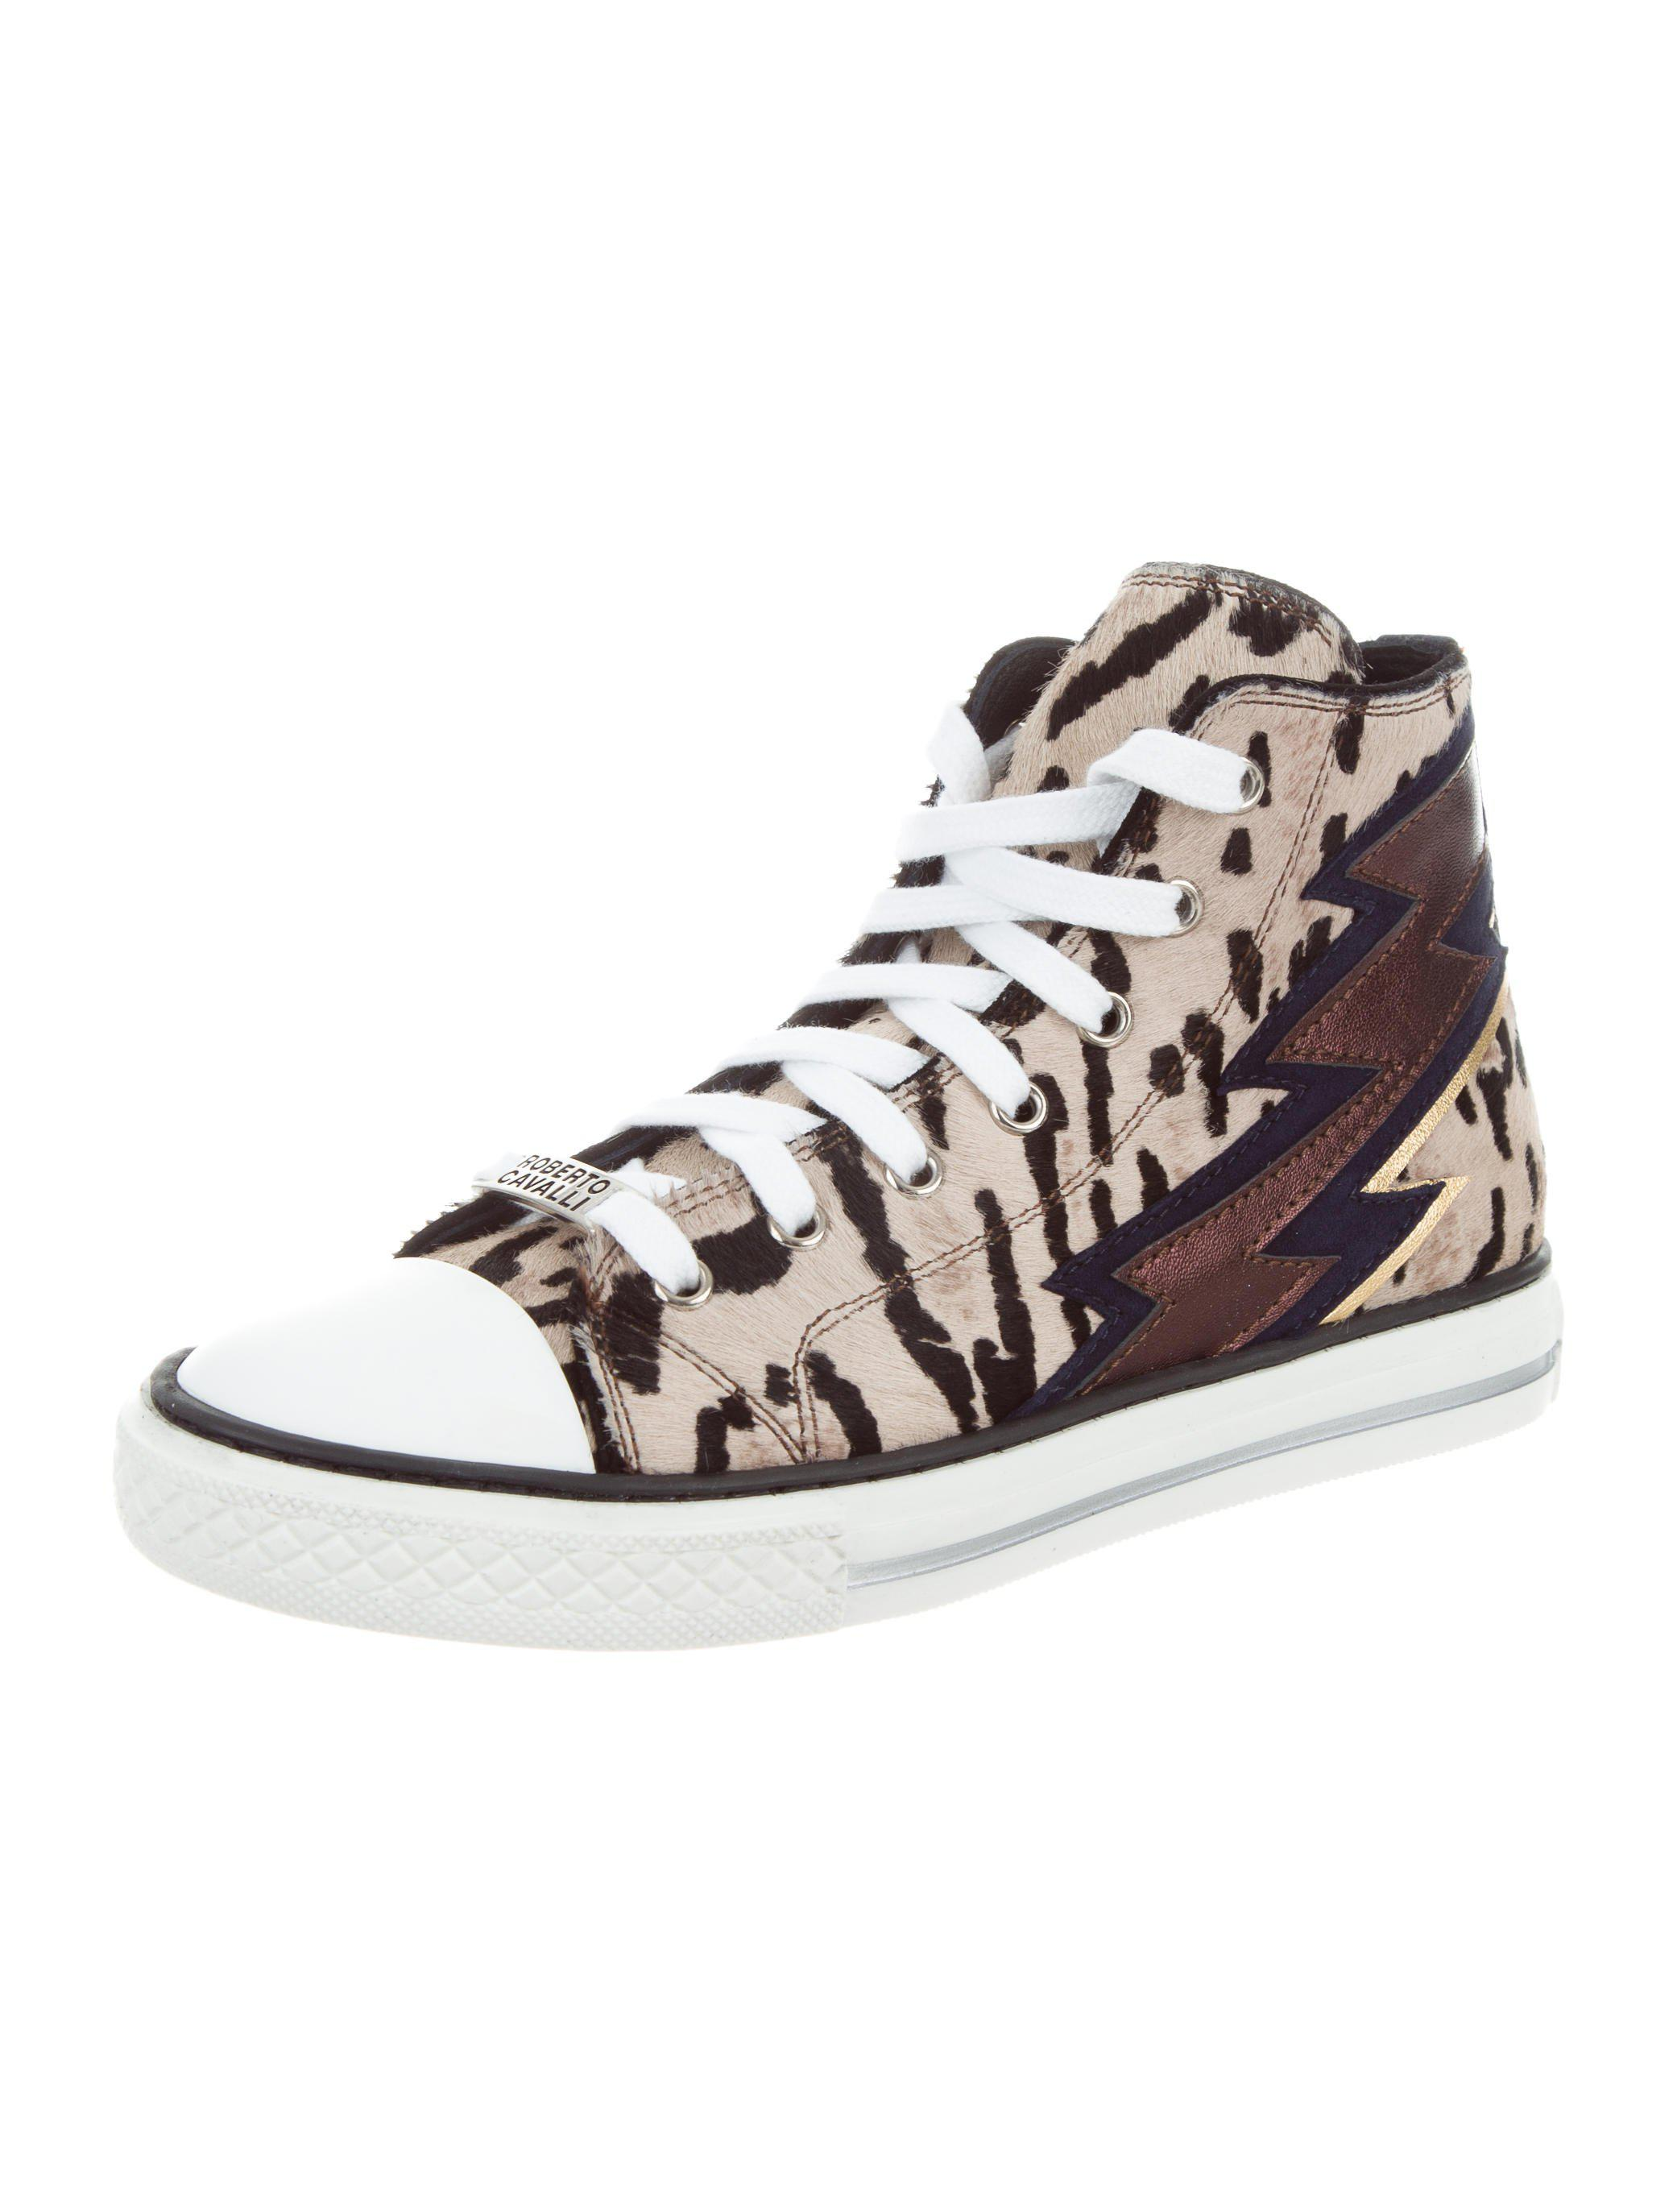 very cheap cheap online free shipping outlet locations Roberto Cavalli Ponyhair High-Top Sneakers w/ Tags Pre-Fall 2016 cheap really cheap price top quality new cheap price 22hDeIO